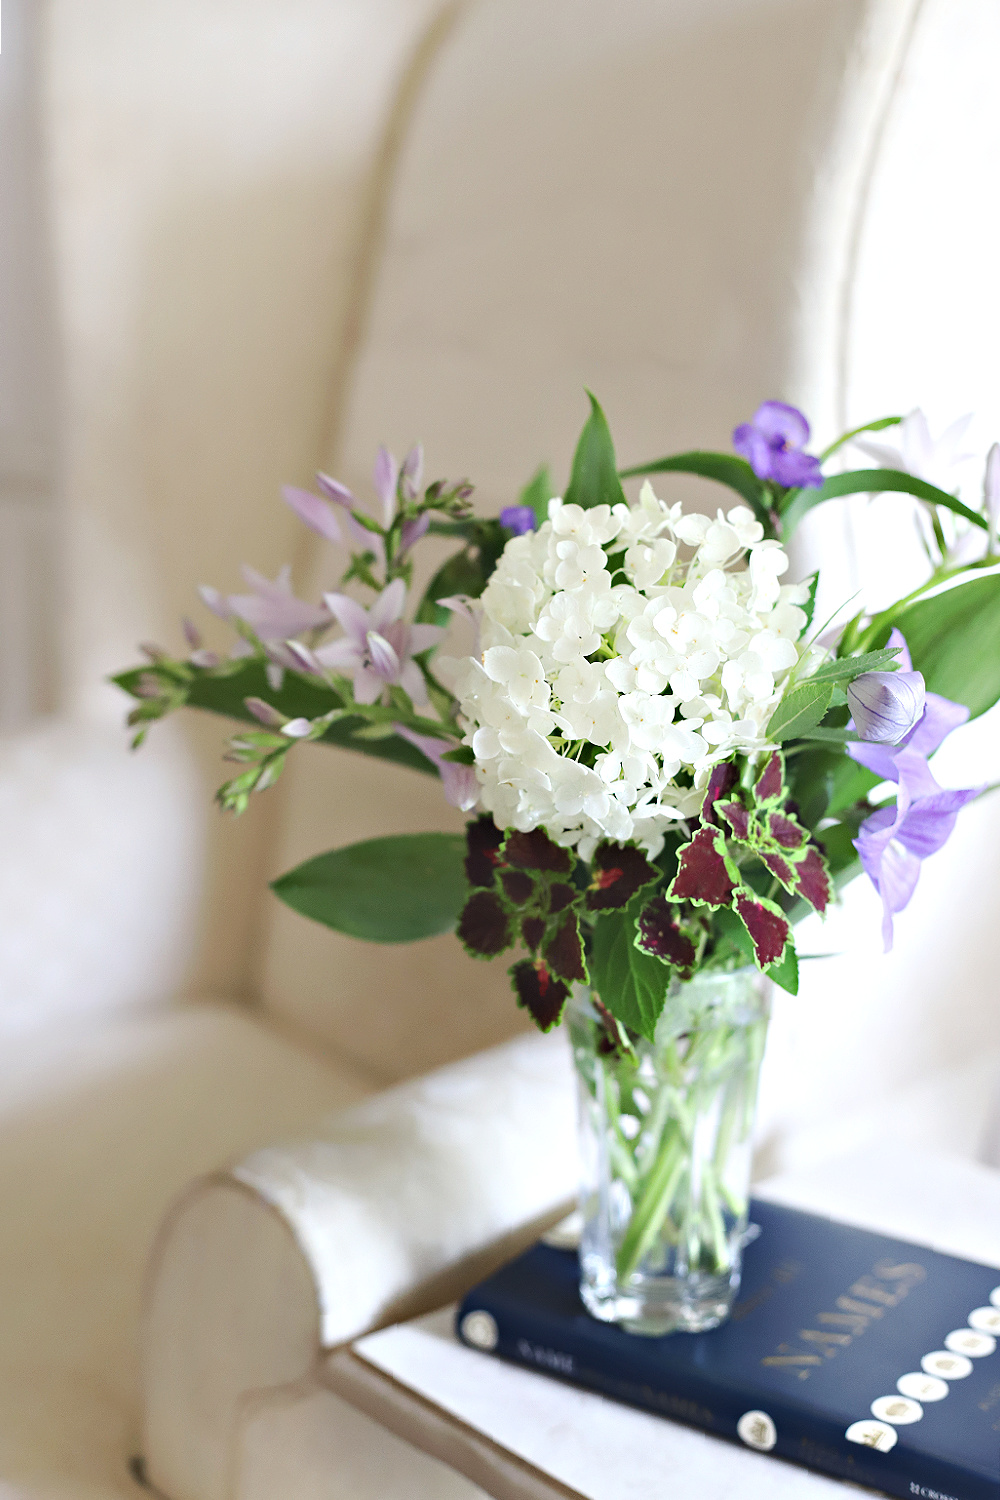 Snippets of flowers gathered after the rain arranged in a vase by the reading chair.